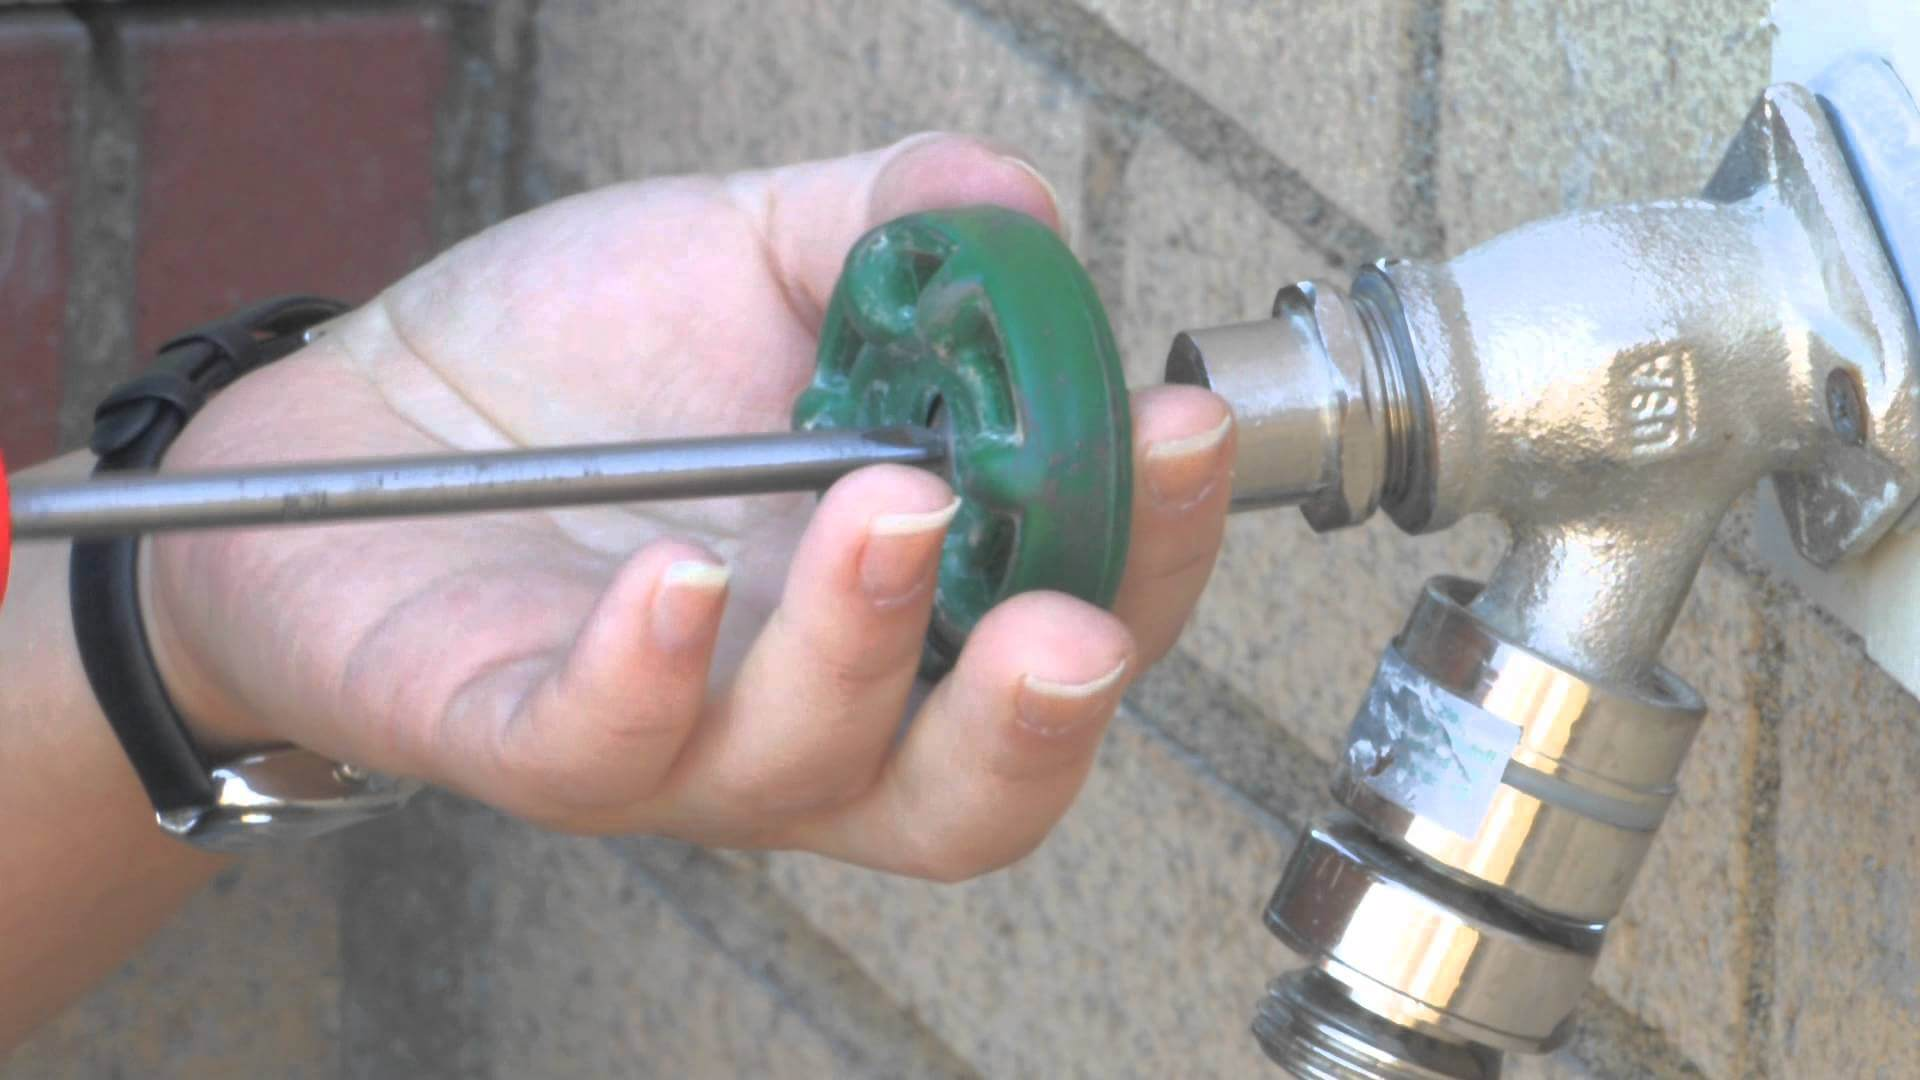 Exterior drain work to winterize your home